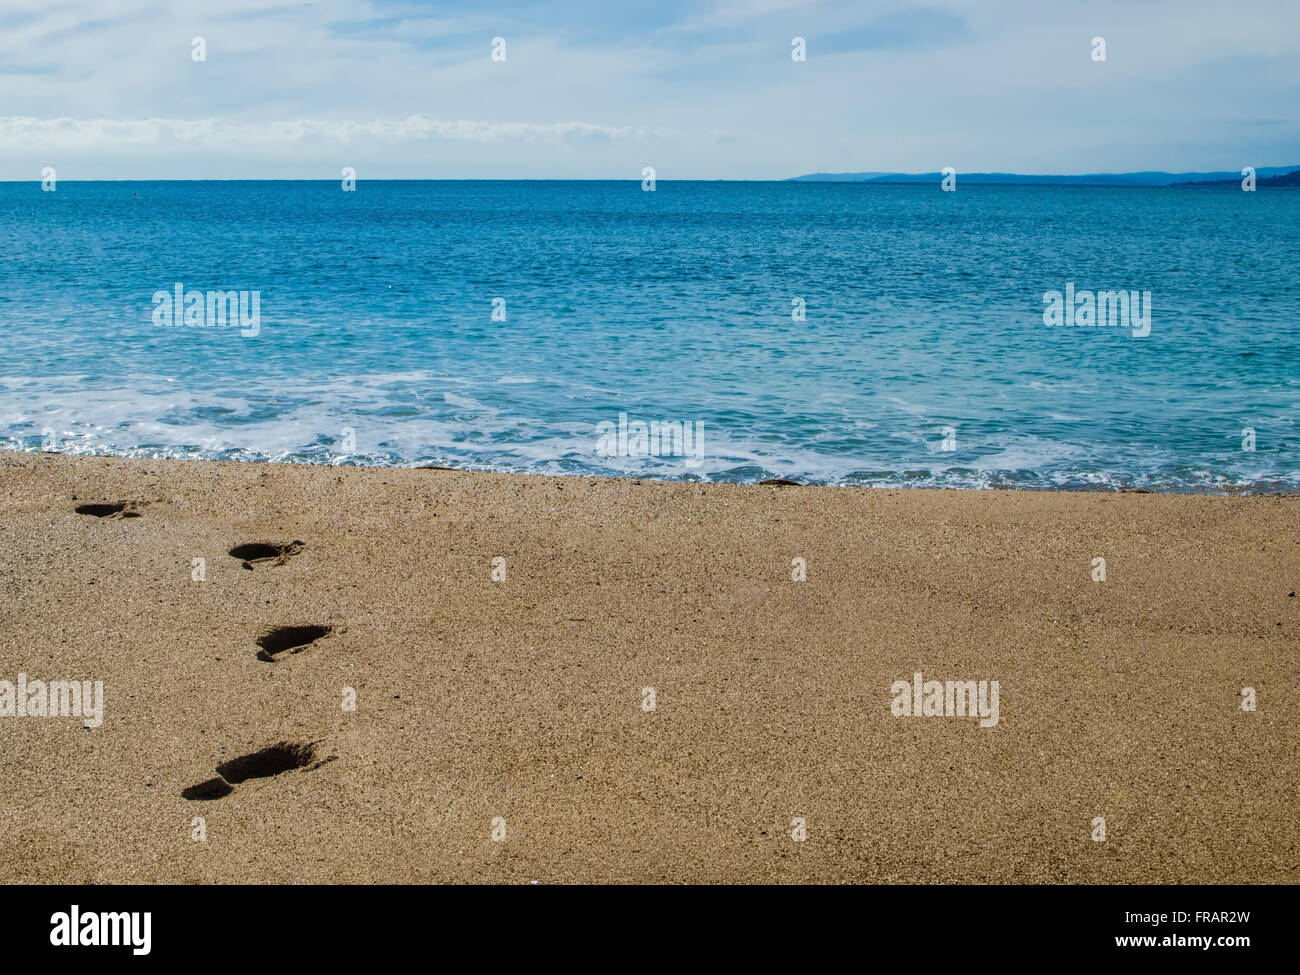 Footprints on the beach - Stock Image